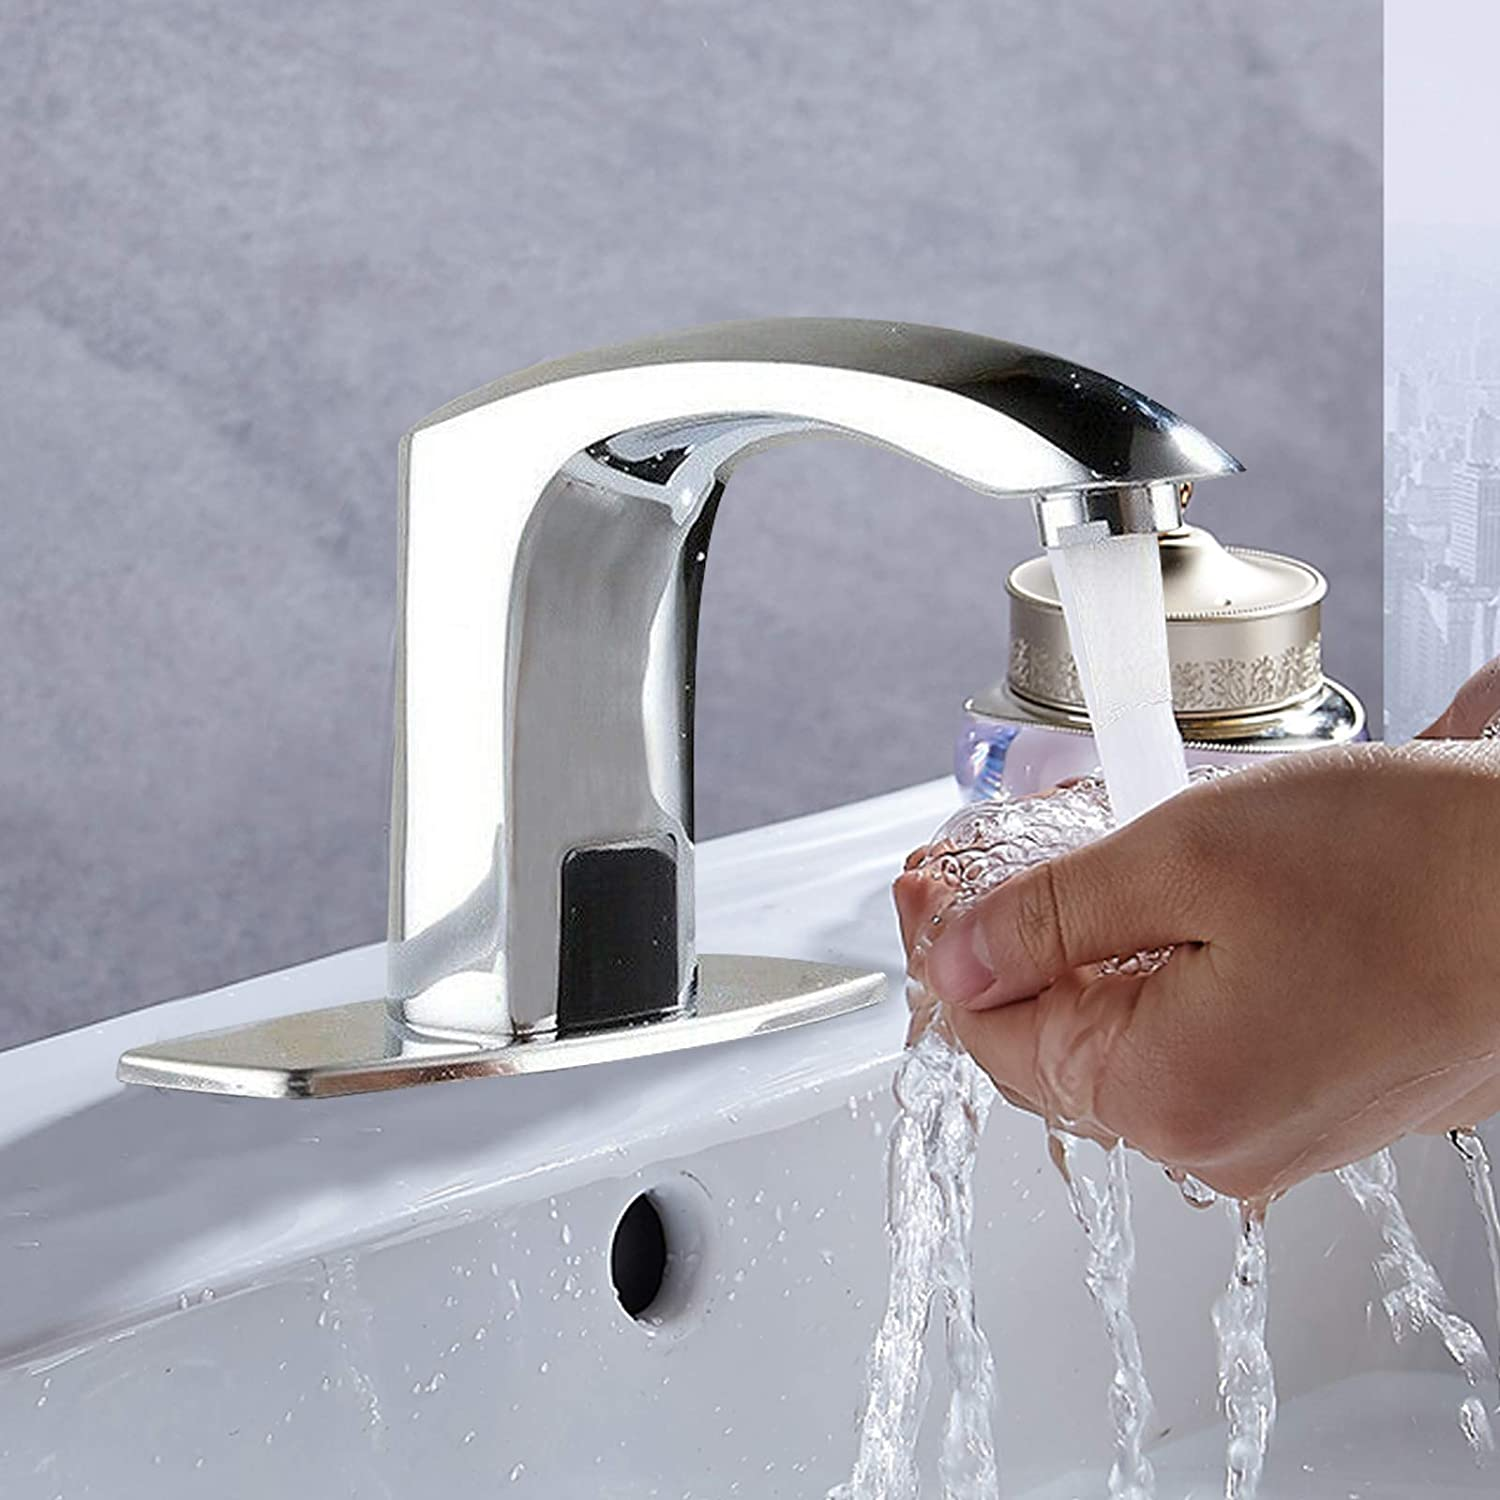 Hands Free Sensor Motion Touchless Electronic Faucet Automatic Max 67% OFF S It is very popular